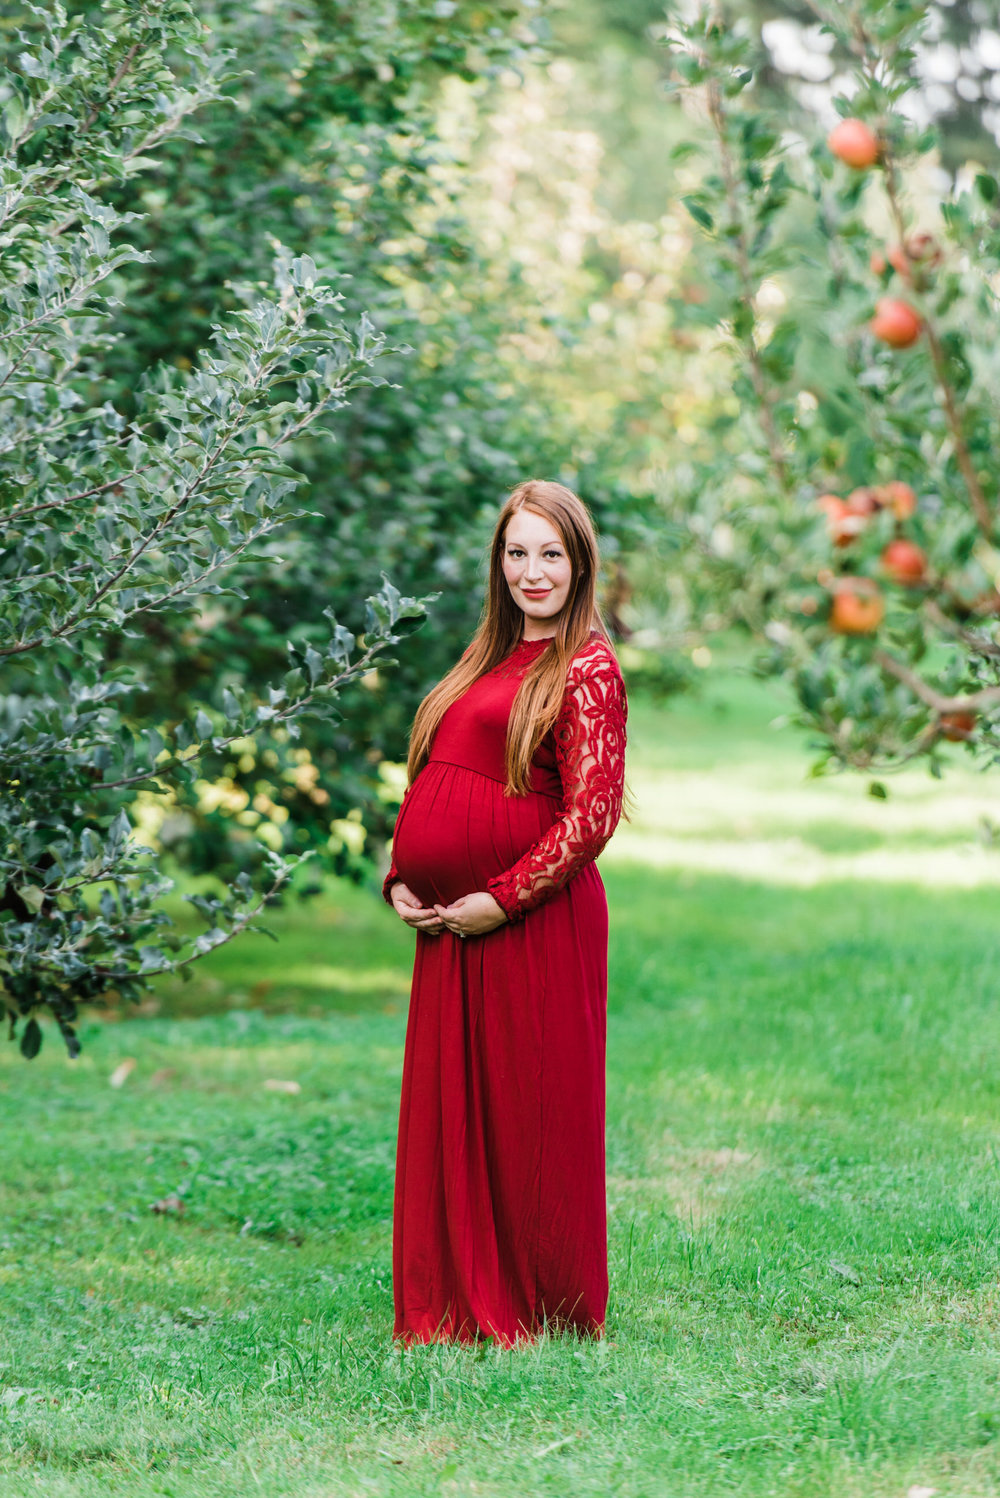 pittsburgh-maternity-photographers-winery-apple-orchard-session_25.jpg